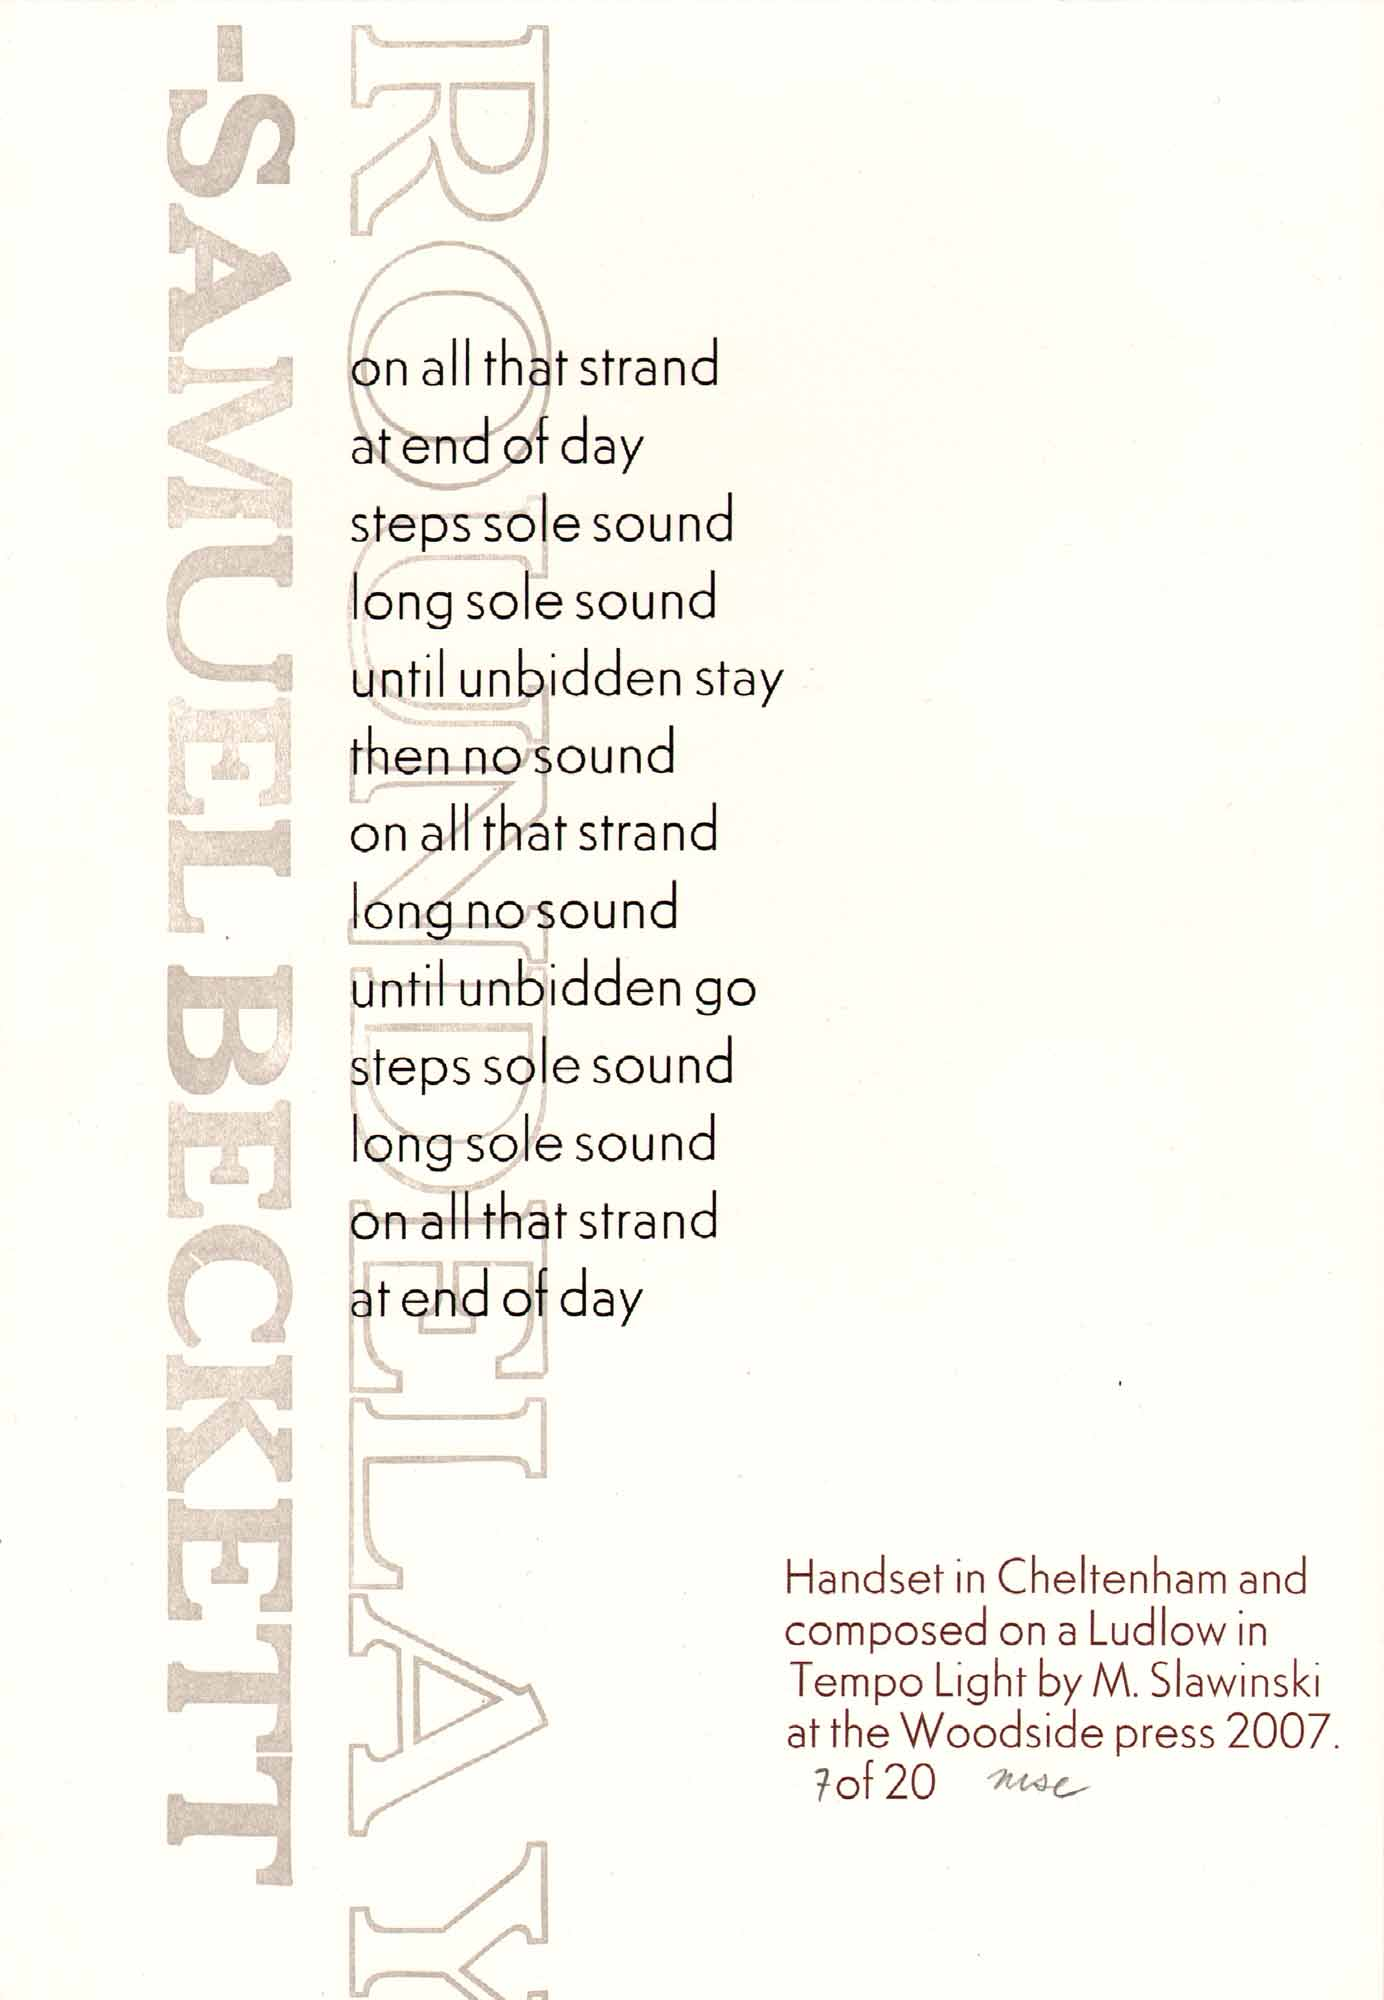 image of broadside by Samuel Beckett: Roundelay // on all that strand / at end of day / steps sole sound / until unbidden slay / then no sound / on all that strand / long no sound / until unbidden go / steps sole sound / long sole sound / on all that strand / at end of day ... Handset in Cheeltenham and composed on a Ludlow in Tempo Light by M. Slawinski at the Woodside press 2007. 7 of 20